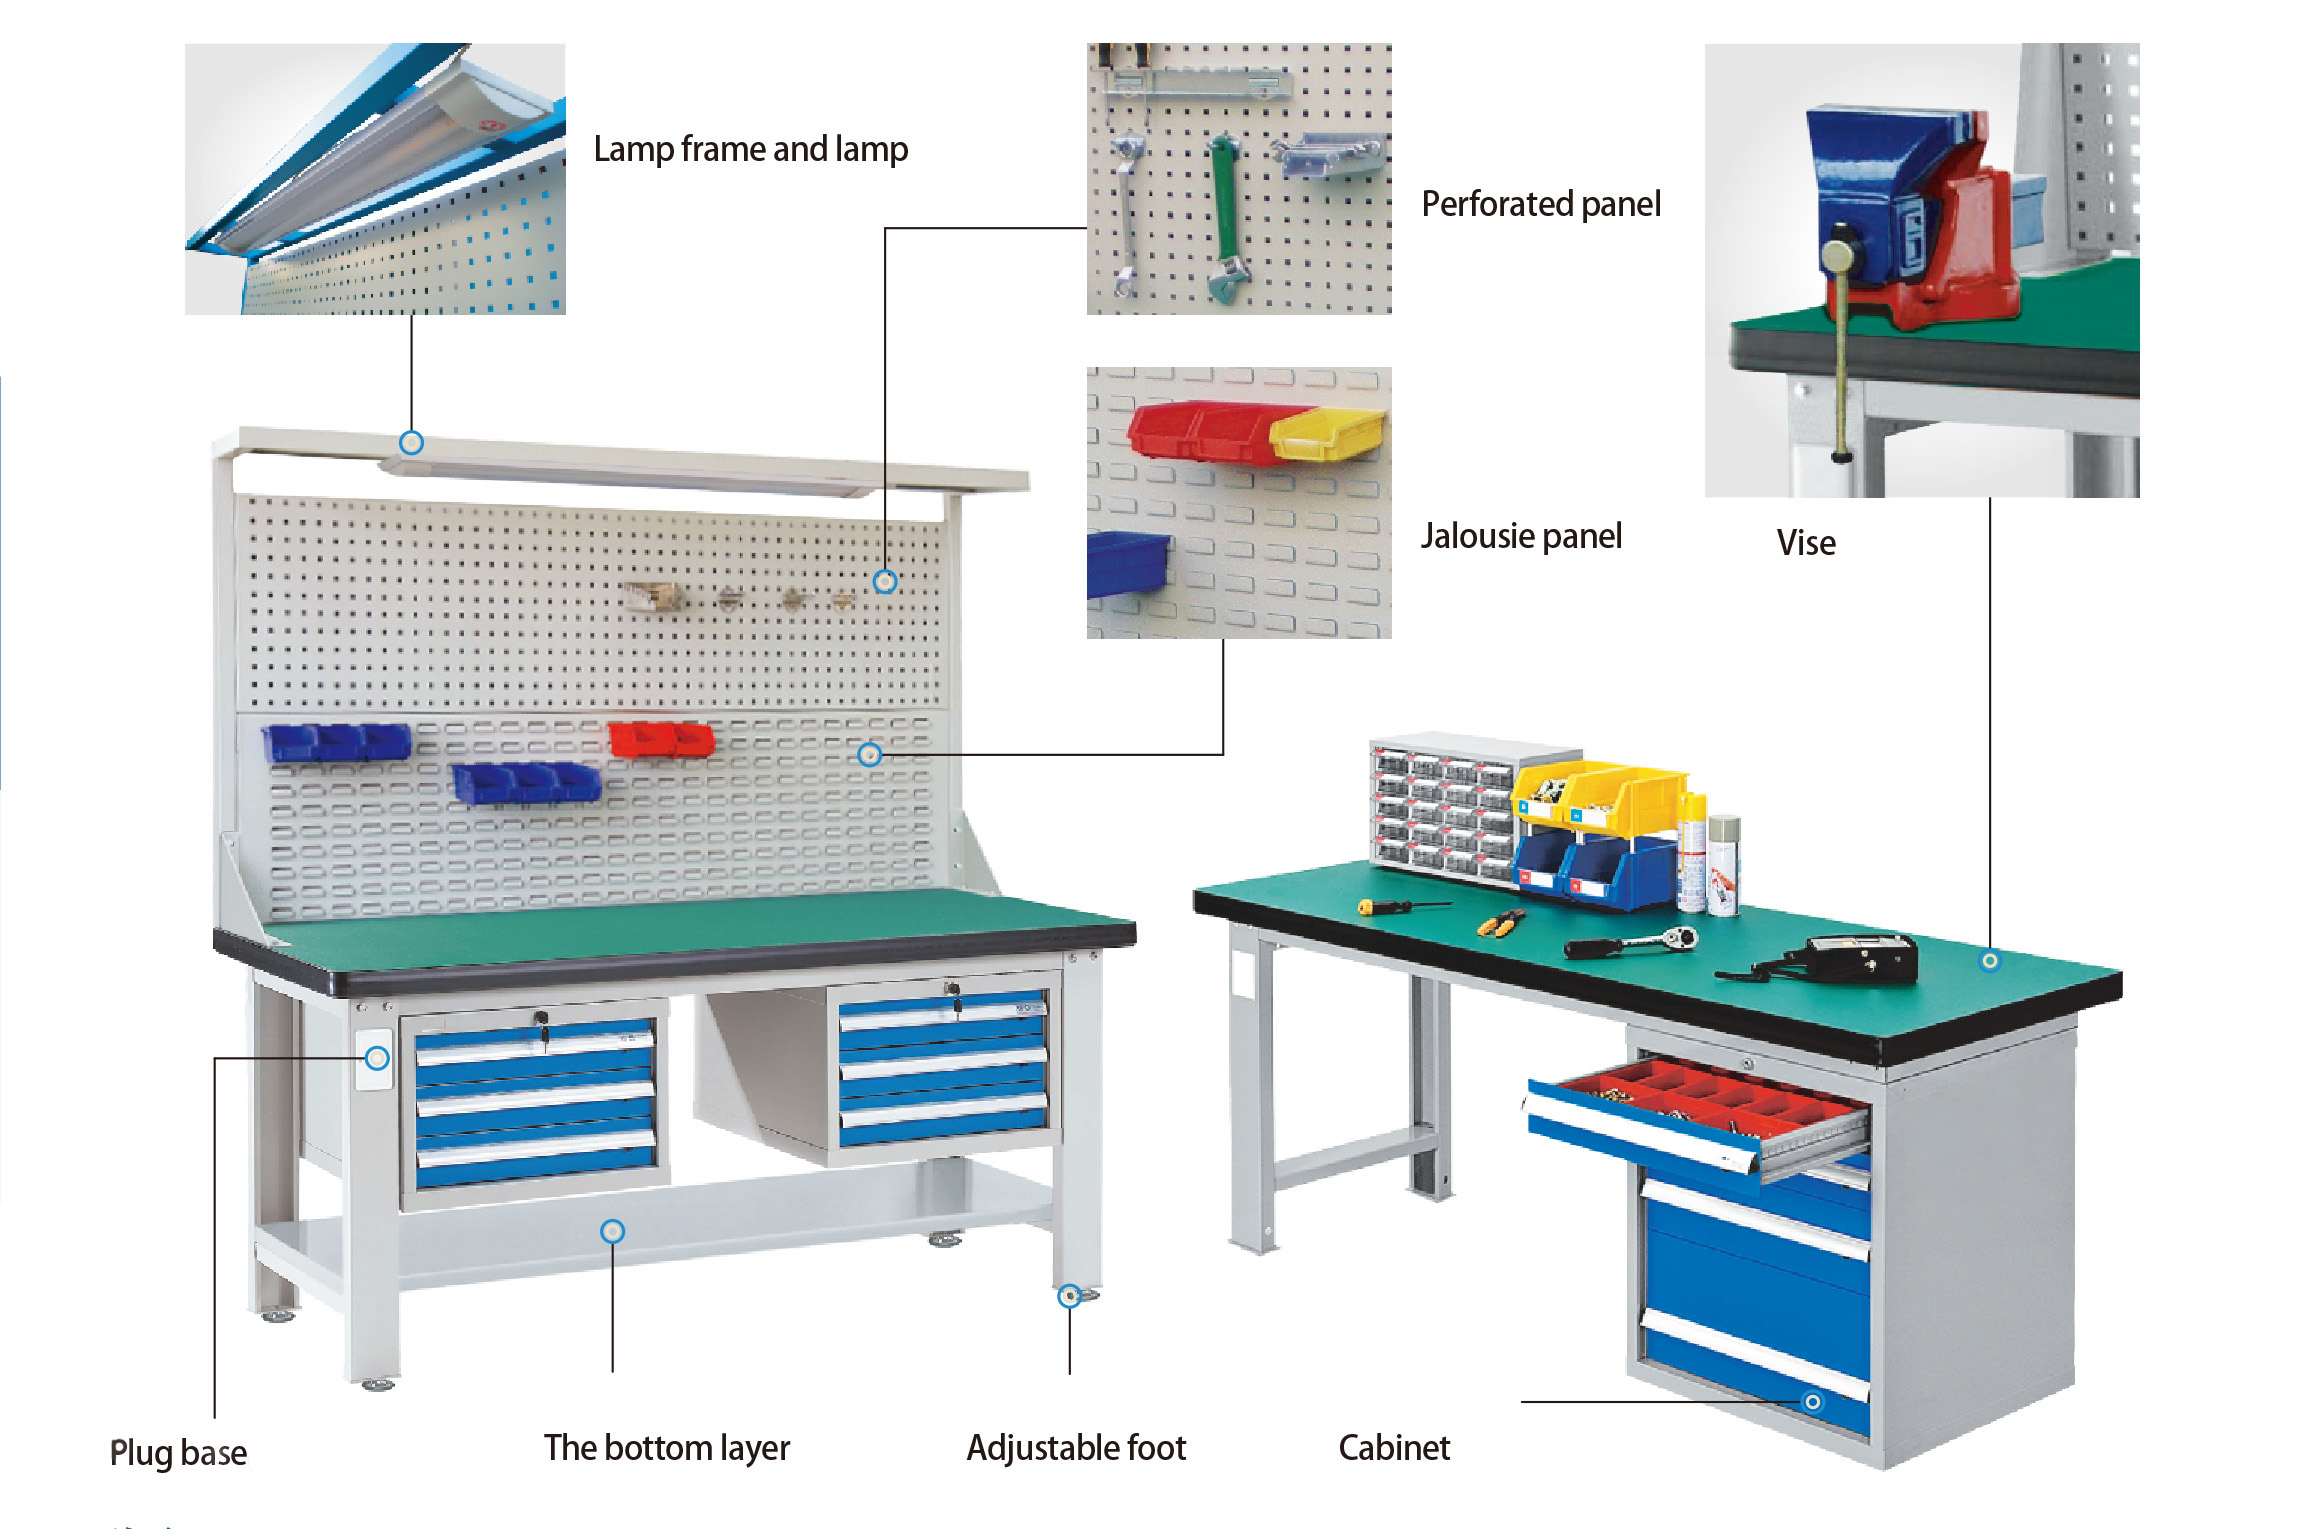 Awe Inspiring Workbench Ningbo Apwer Logistics Equipm Ent Co Ltd Caraccident5 Cool Chair Designs And Ideas Caraccident5Info